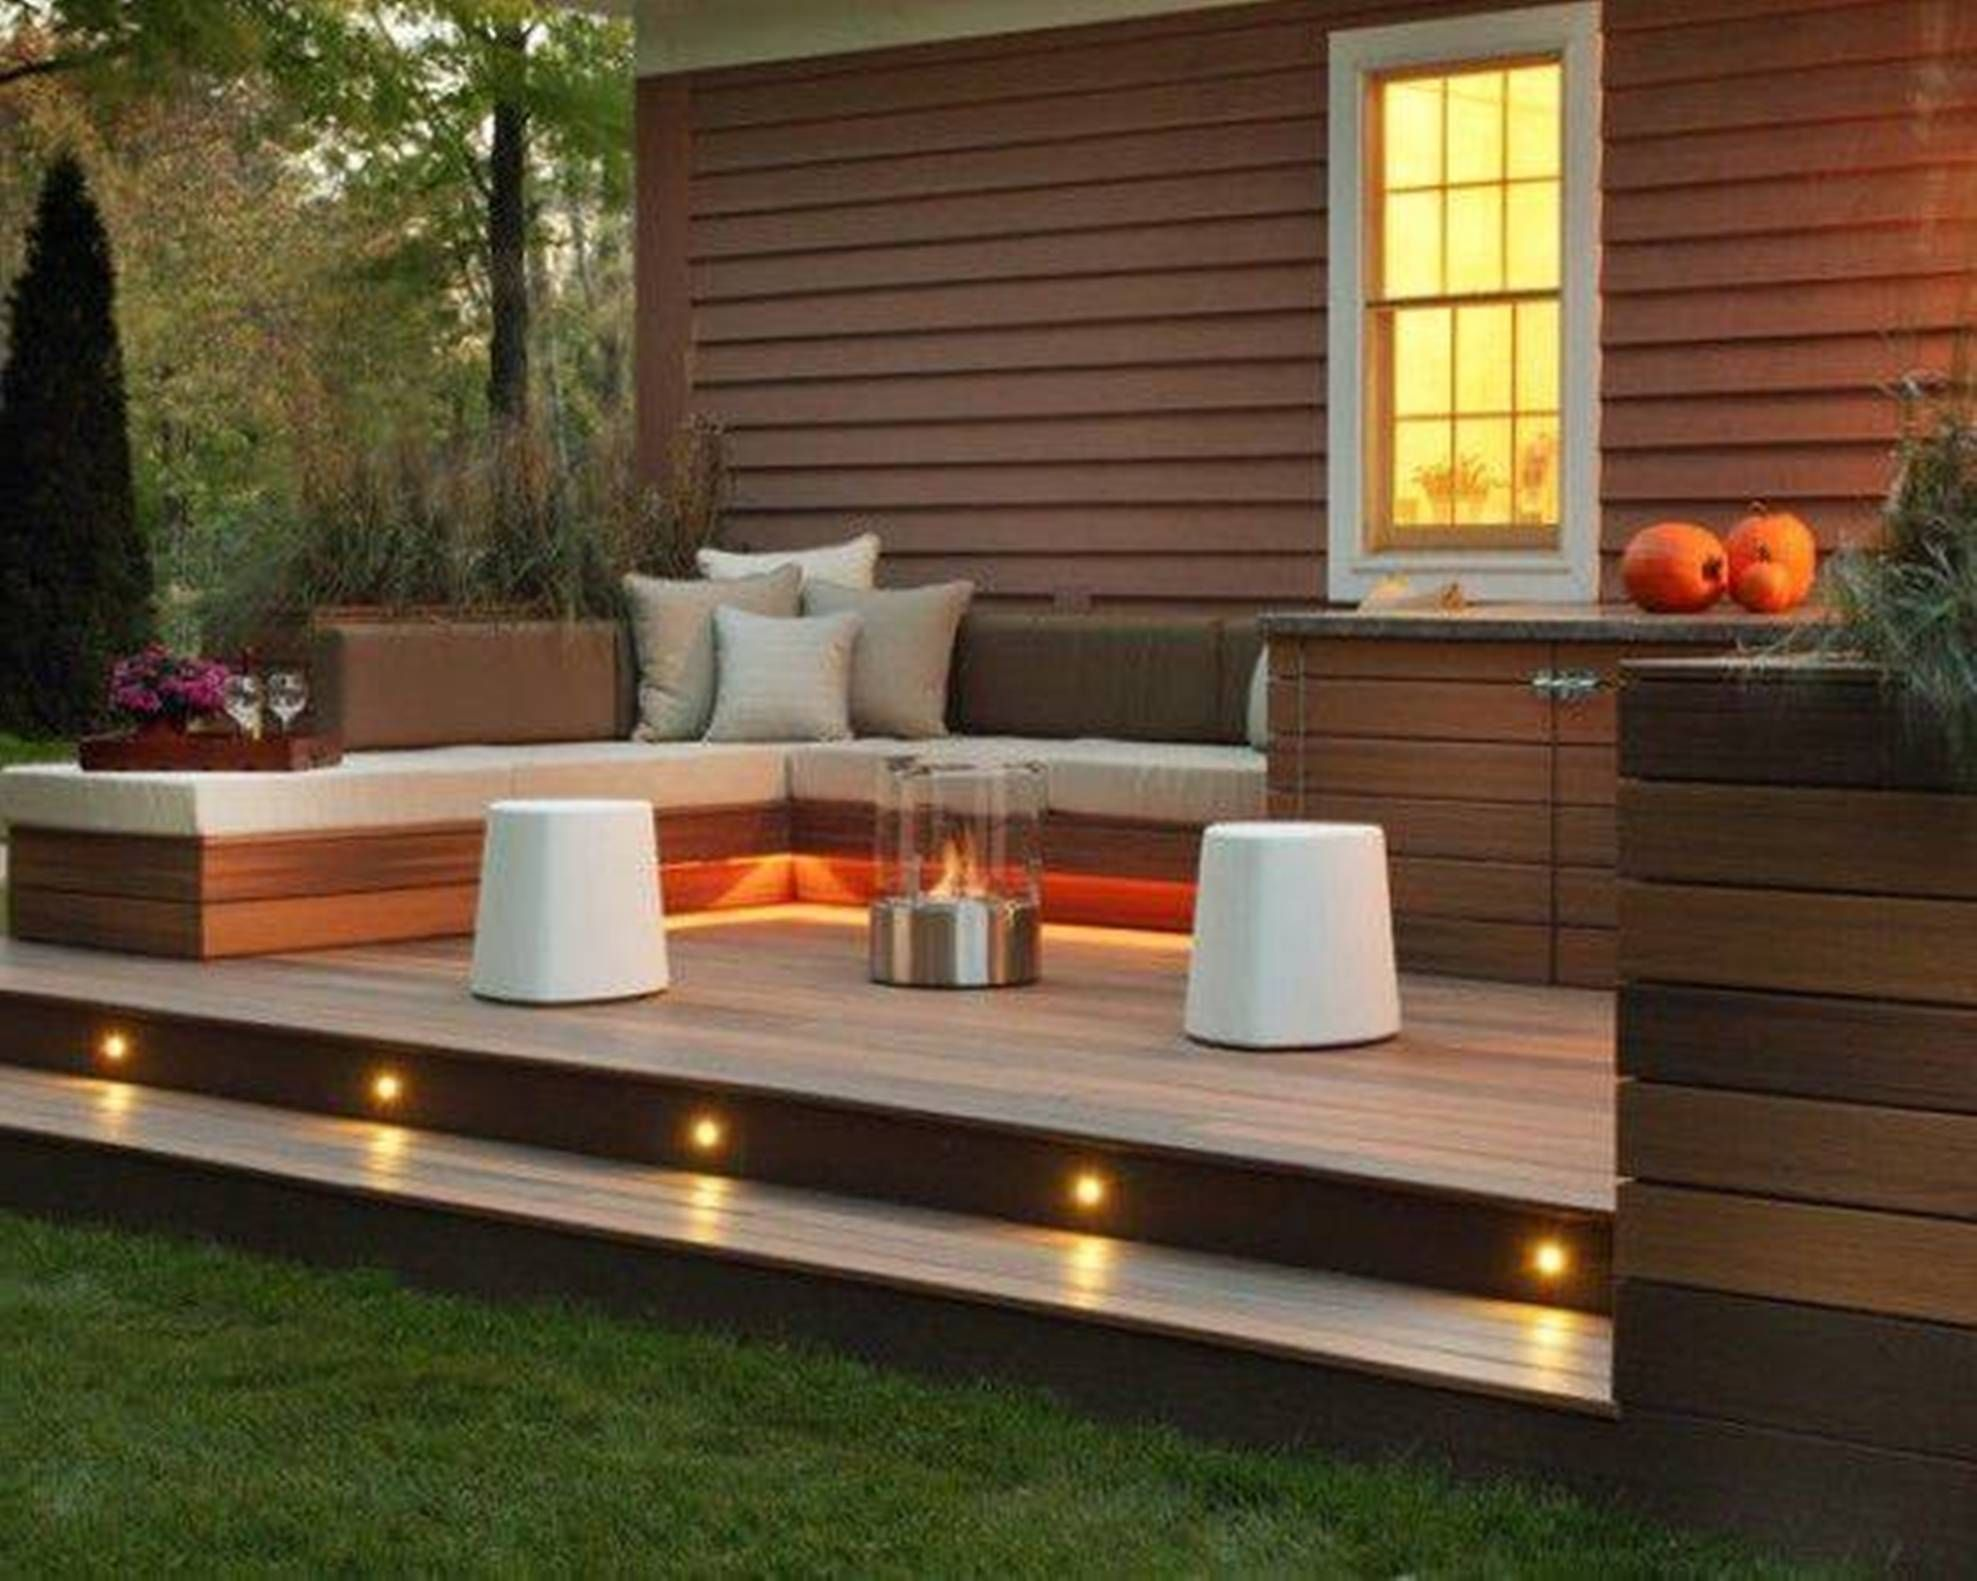 Deck Design Ideas 7 stylish deck features hgtv Landscaping And Outdoor Building Great Small Backyard Deck Designs Small Backyard Deck Designs With